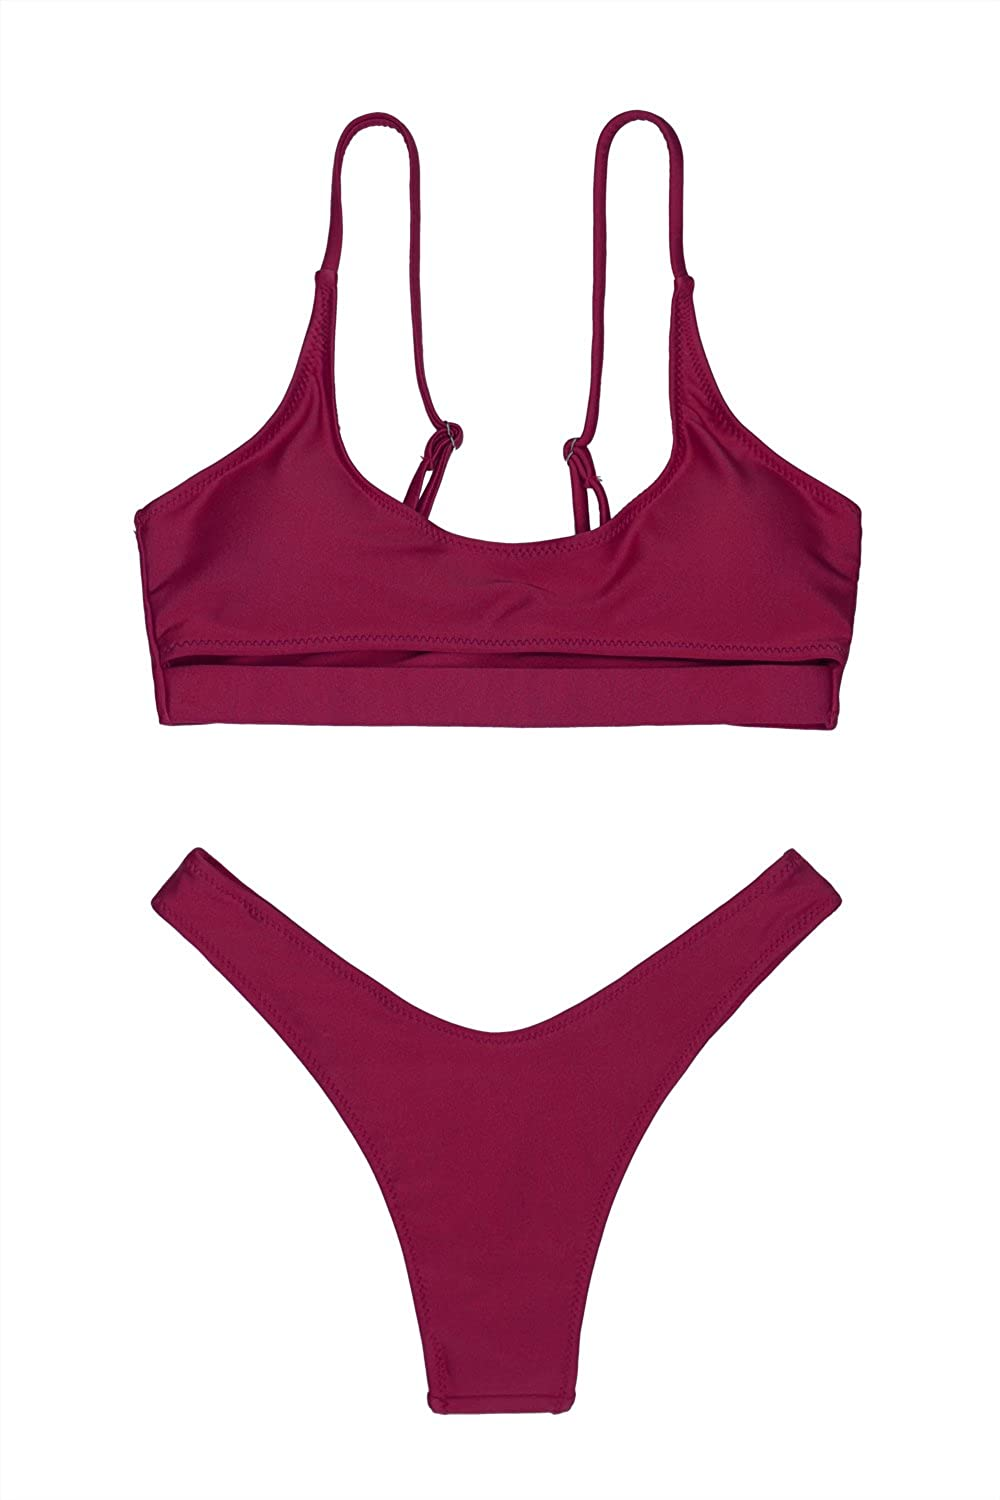 e9209f48be LEISUP Womens Cutout Crop Top High Cut Cheeky Two Piece Brazilian Bikini  Swimsuit